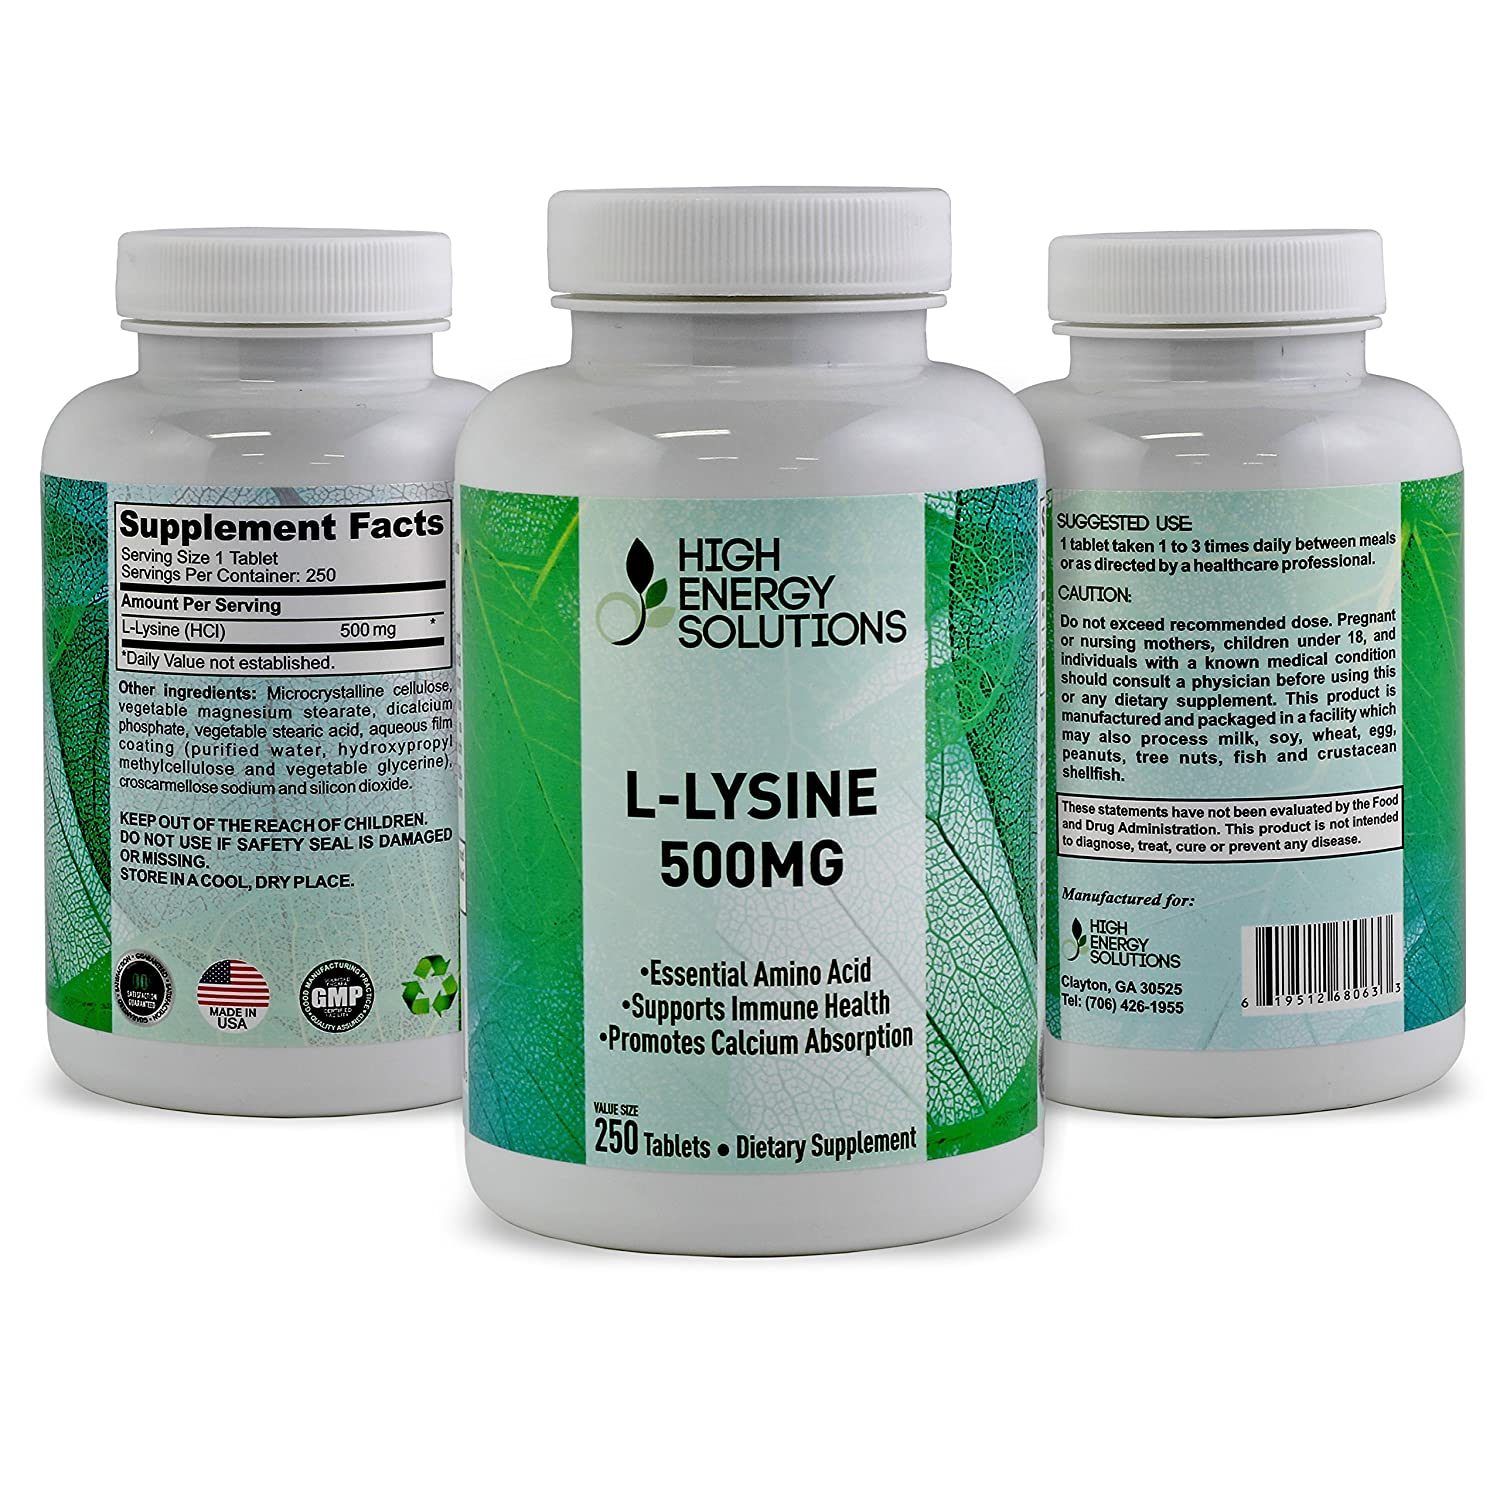 Amazon.com: HIGH ENERGY SOLUTIONS - L-LYSINE - Value Sized 250 Tablet Bottle 100% Pure - Potent 500MG Essential Amino Acid Tablets For Amazing Health ...